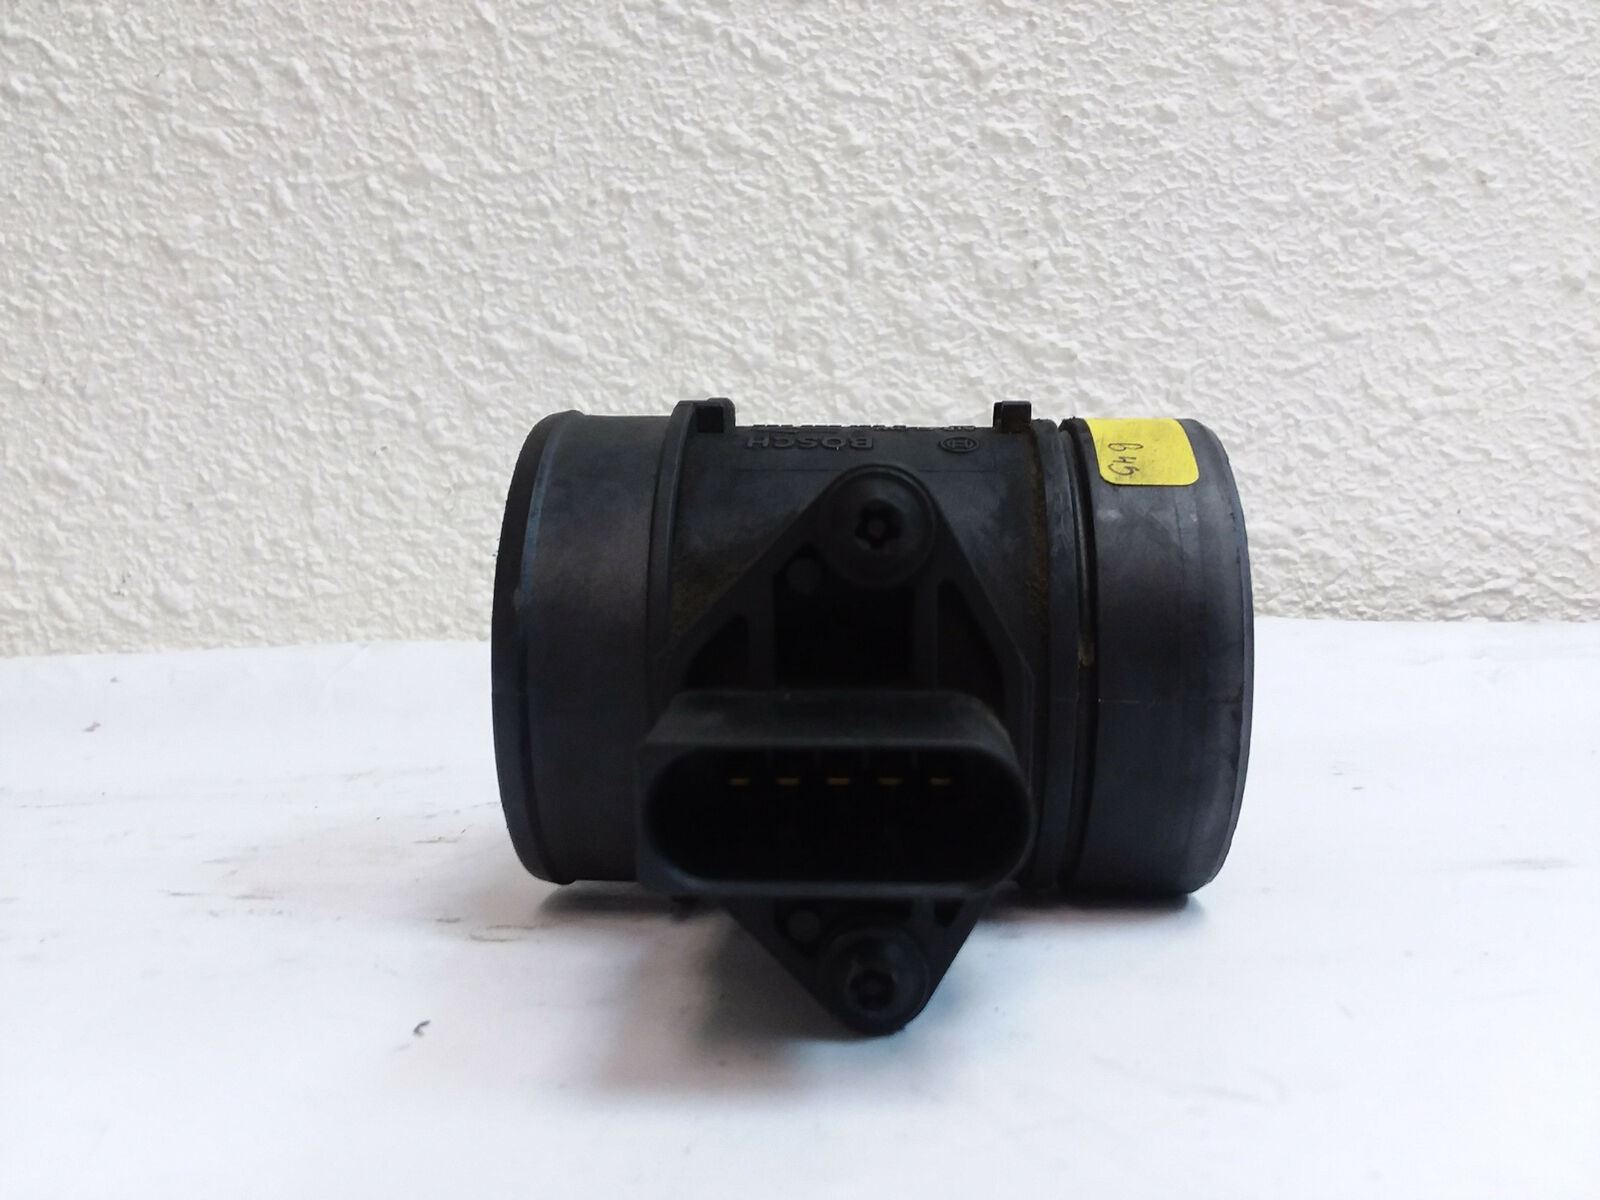 04 PORSCHE CAYENNE S 955 RIGHT SIDE MASS AIR FLOW METER MAF SENSOR - Click Receive Auto Parts